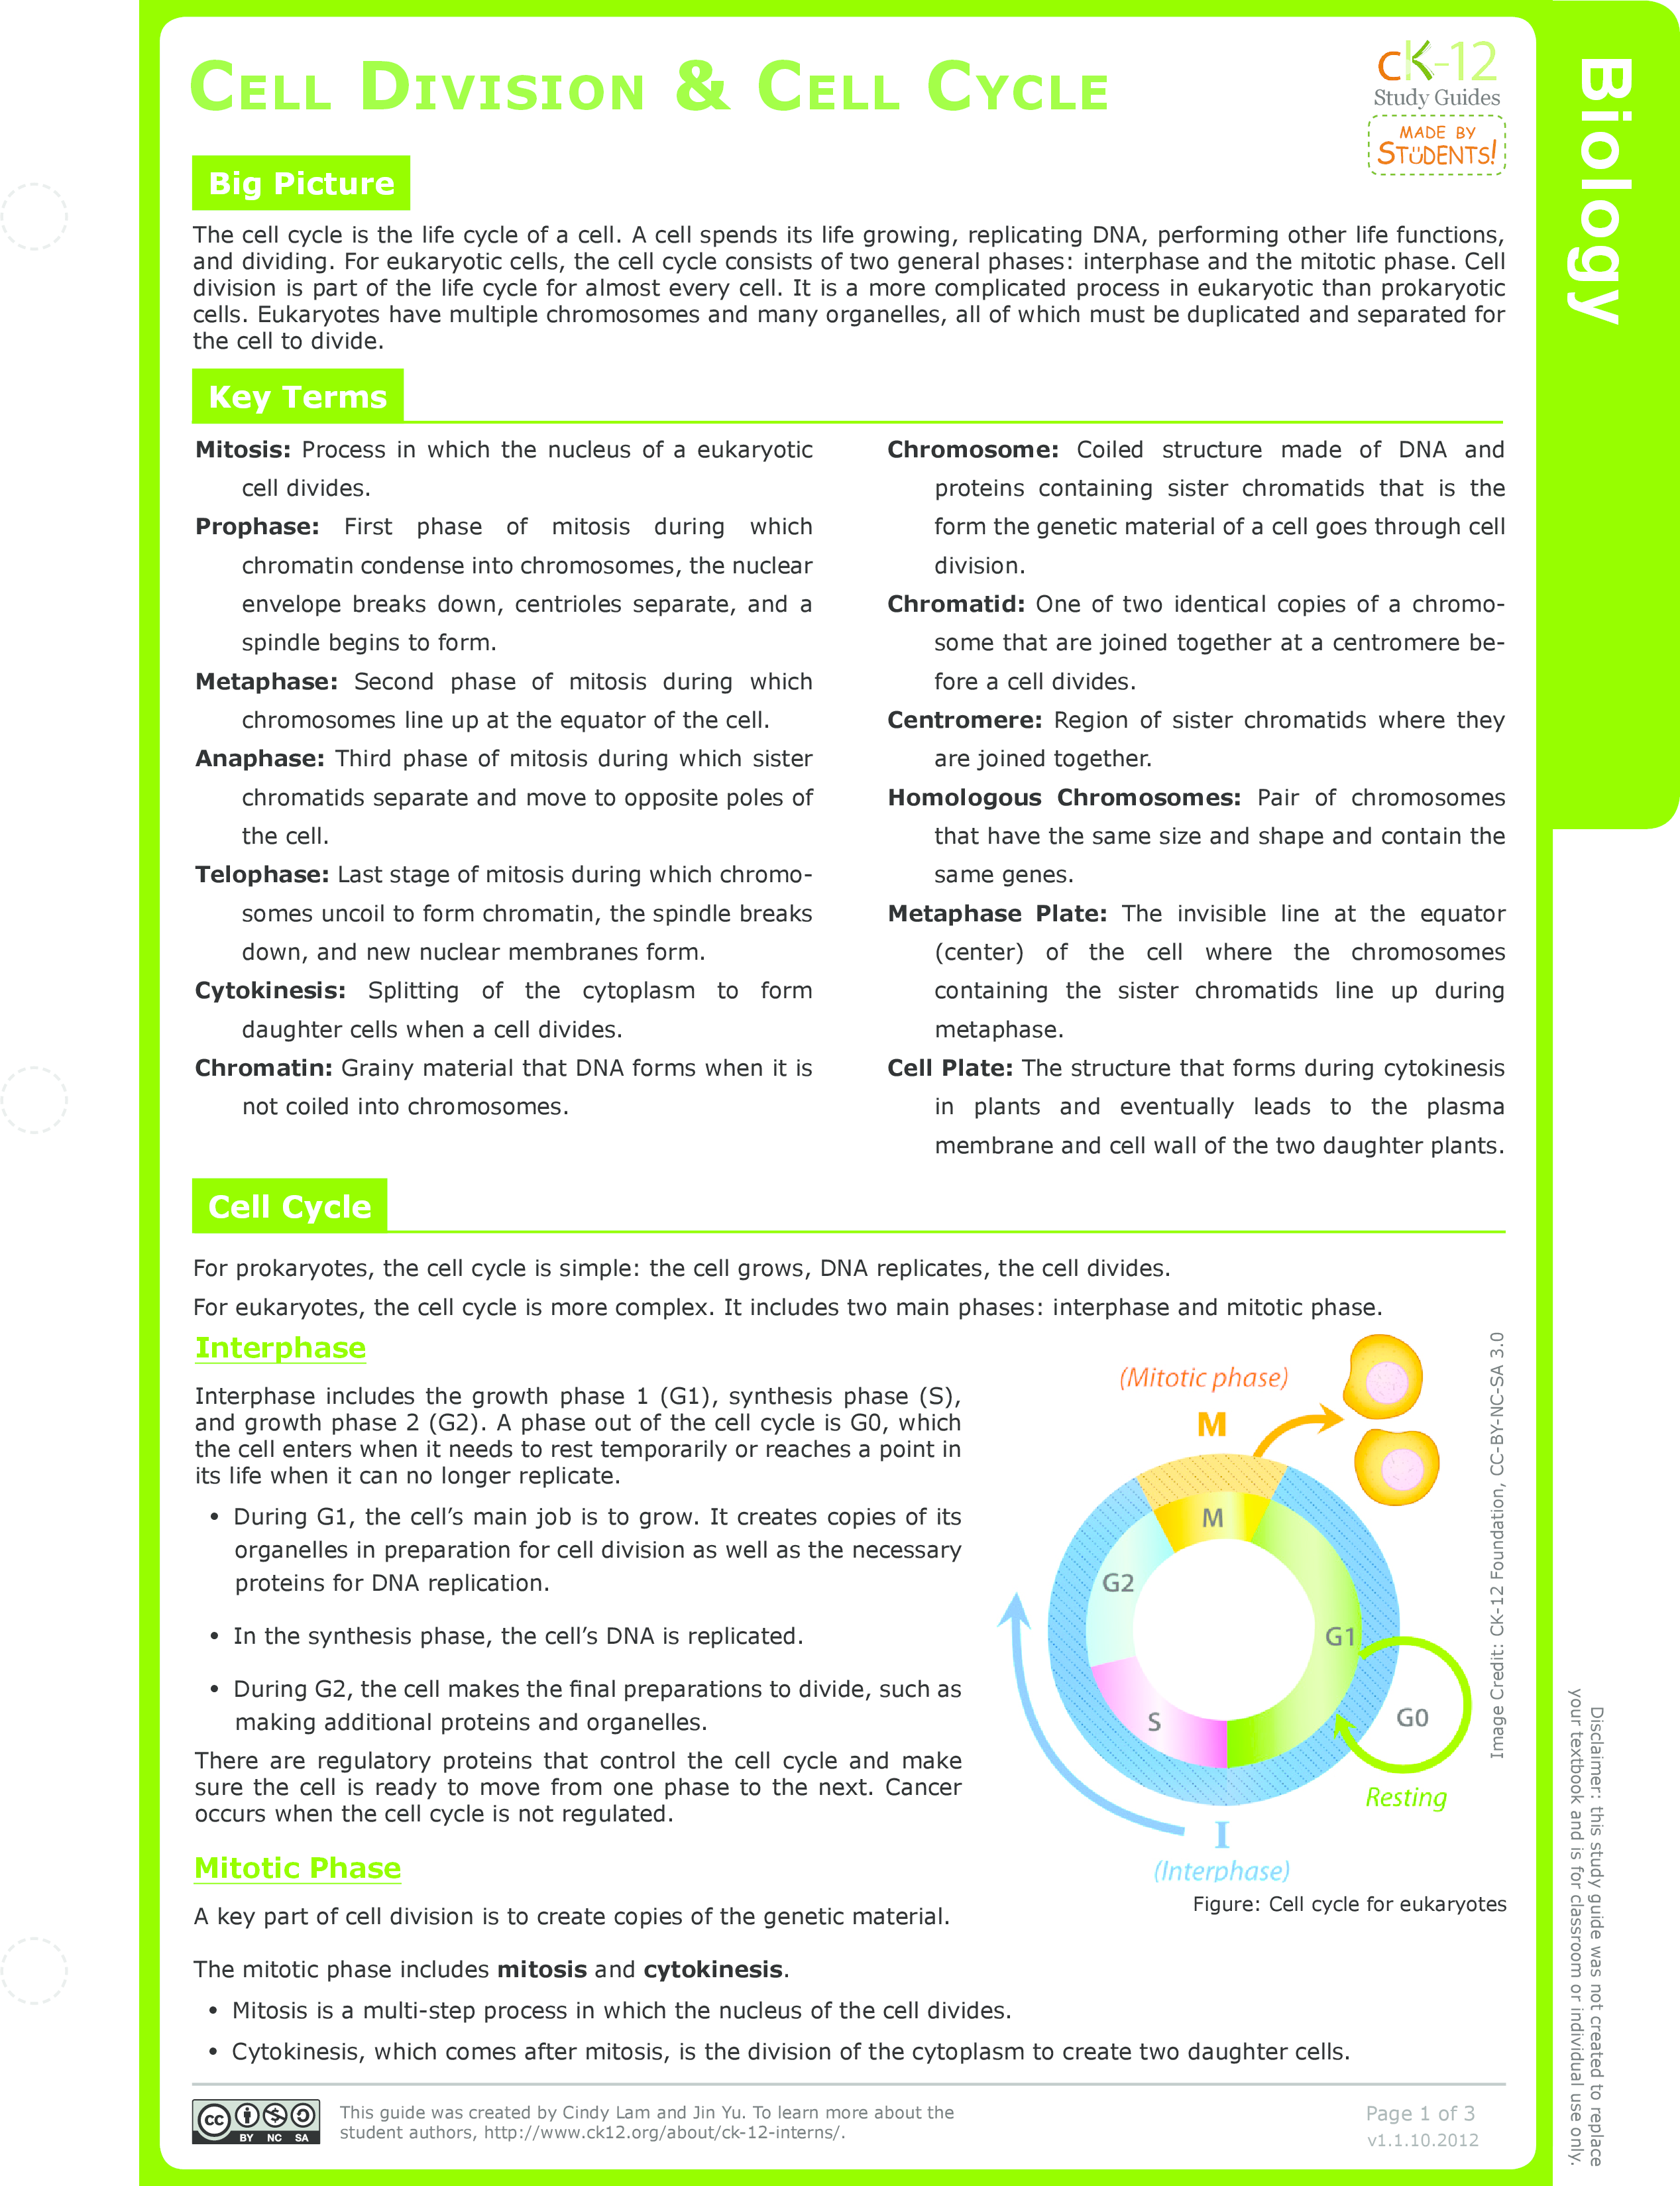 Worksheets Cell Cycle And Mitosis Worksheet Answer Key mitosis ck 12 foundation cell division and cycle study guide